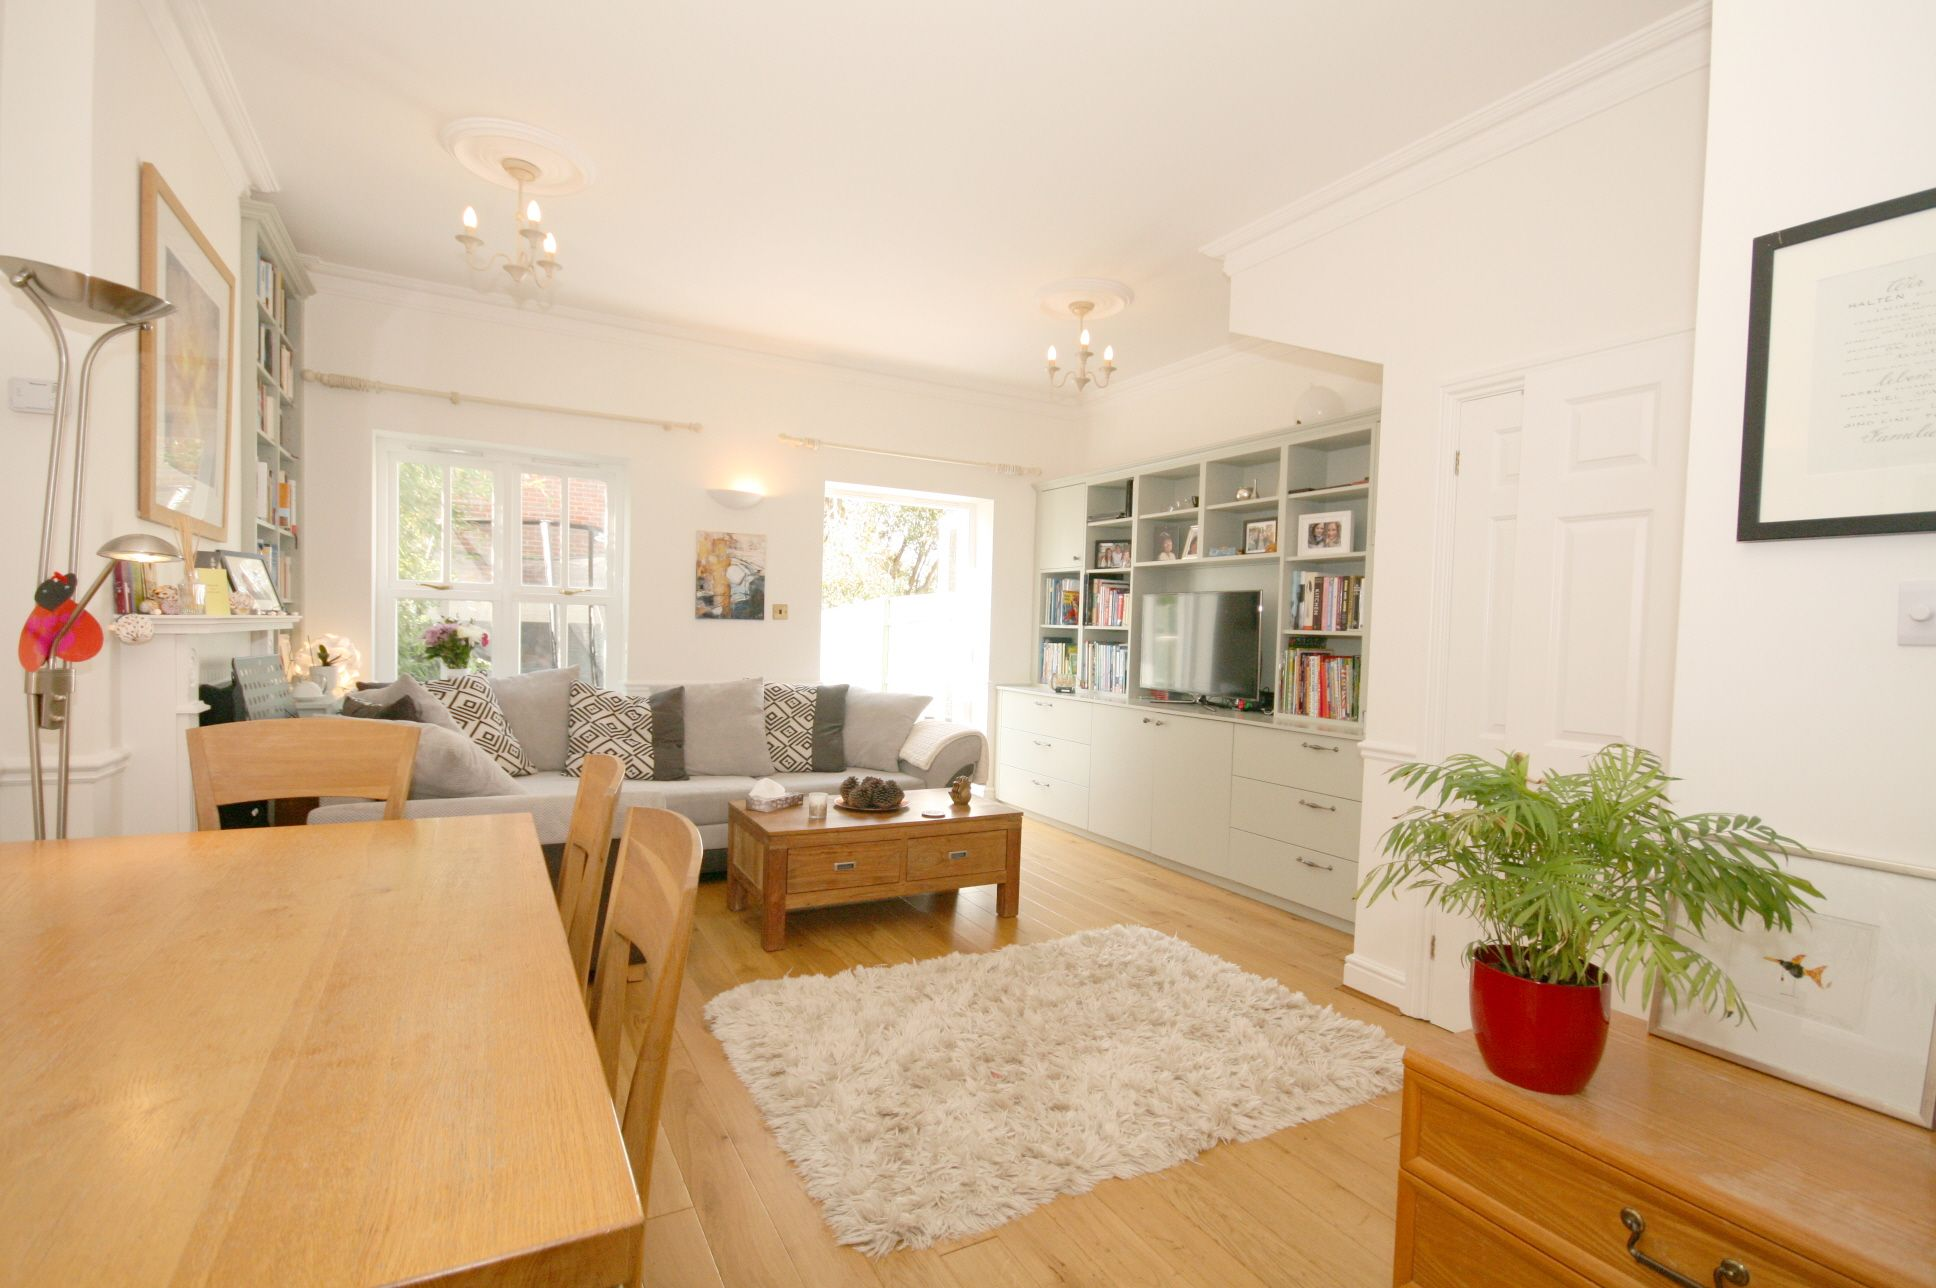 4 Bedroom Mid Terraced House For Sale - Photograph 2